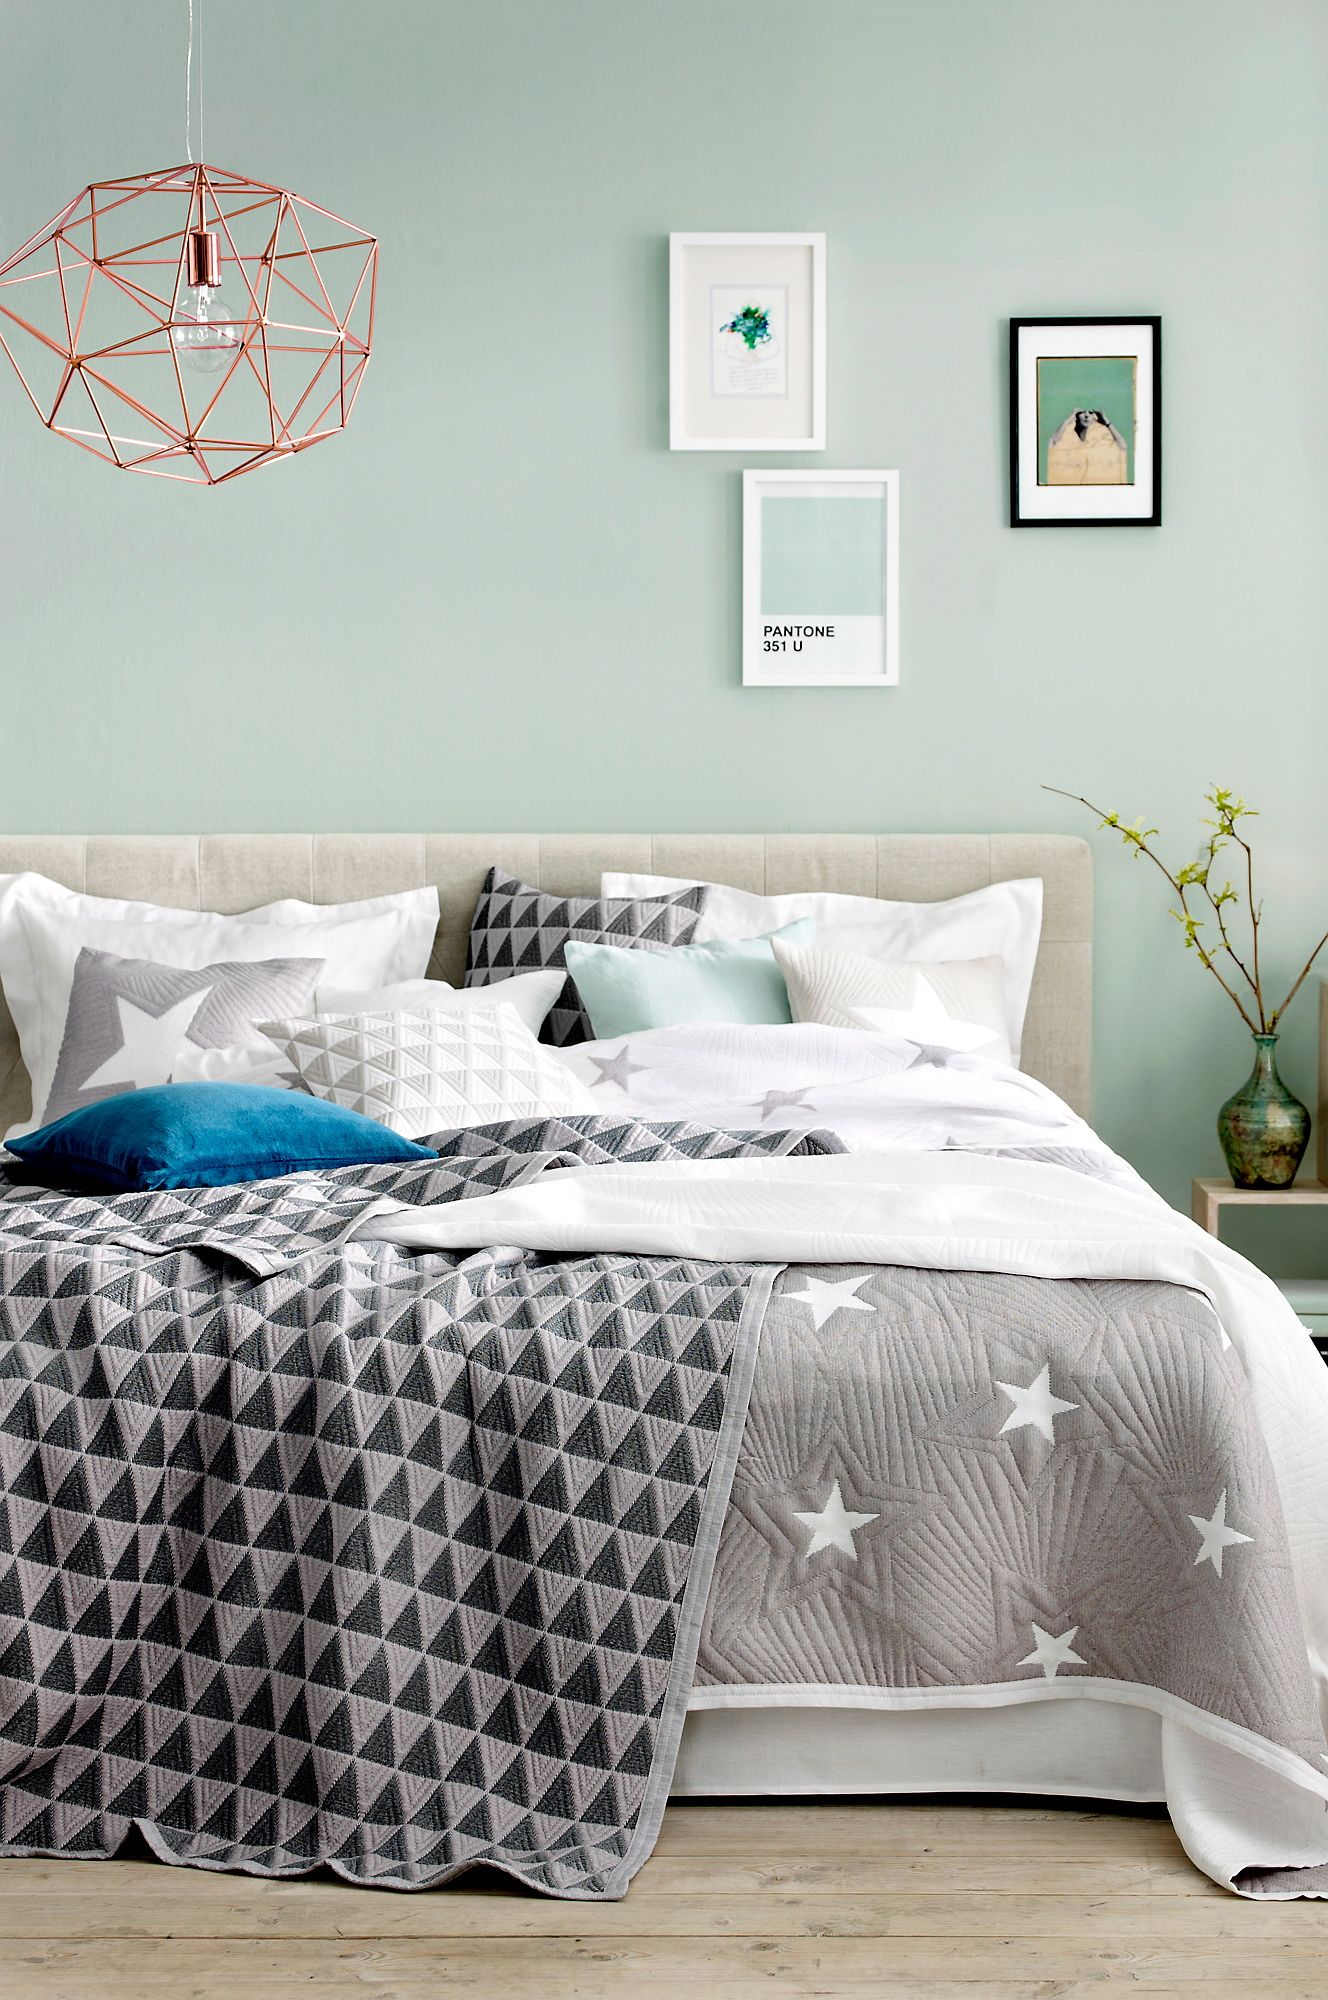 Mint Watery Blue Green Walls Grey Accents Comfy Bed I Like The Star Quilt Bedroom Home